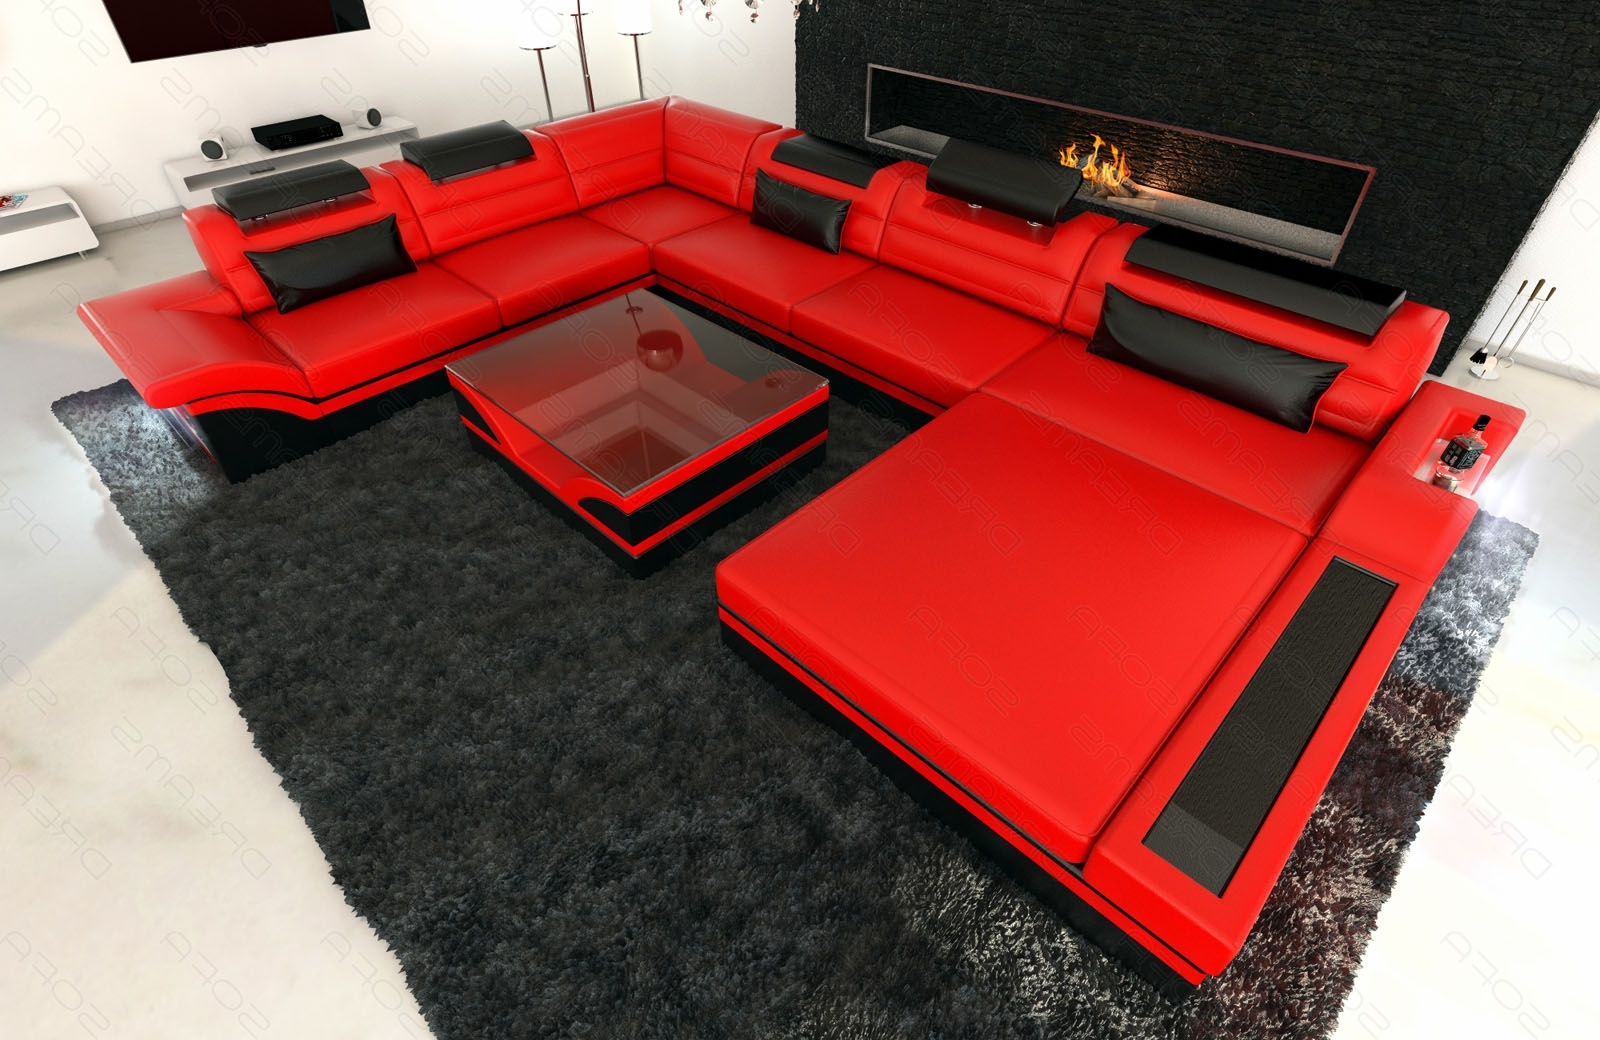 Sectional Sofas At Ebay In Current Design Sectional Sofa Mezzo Xxl With Led Lights Red Black (View 4 of 20)